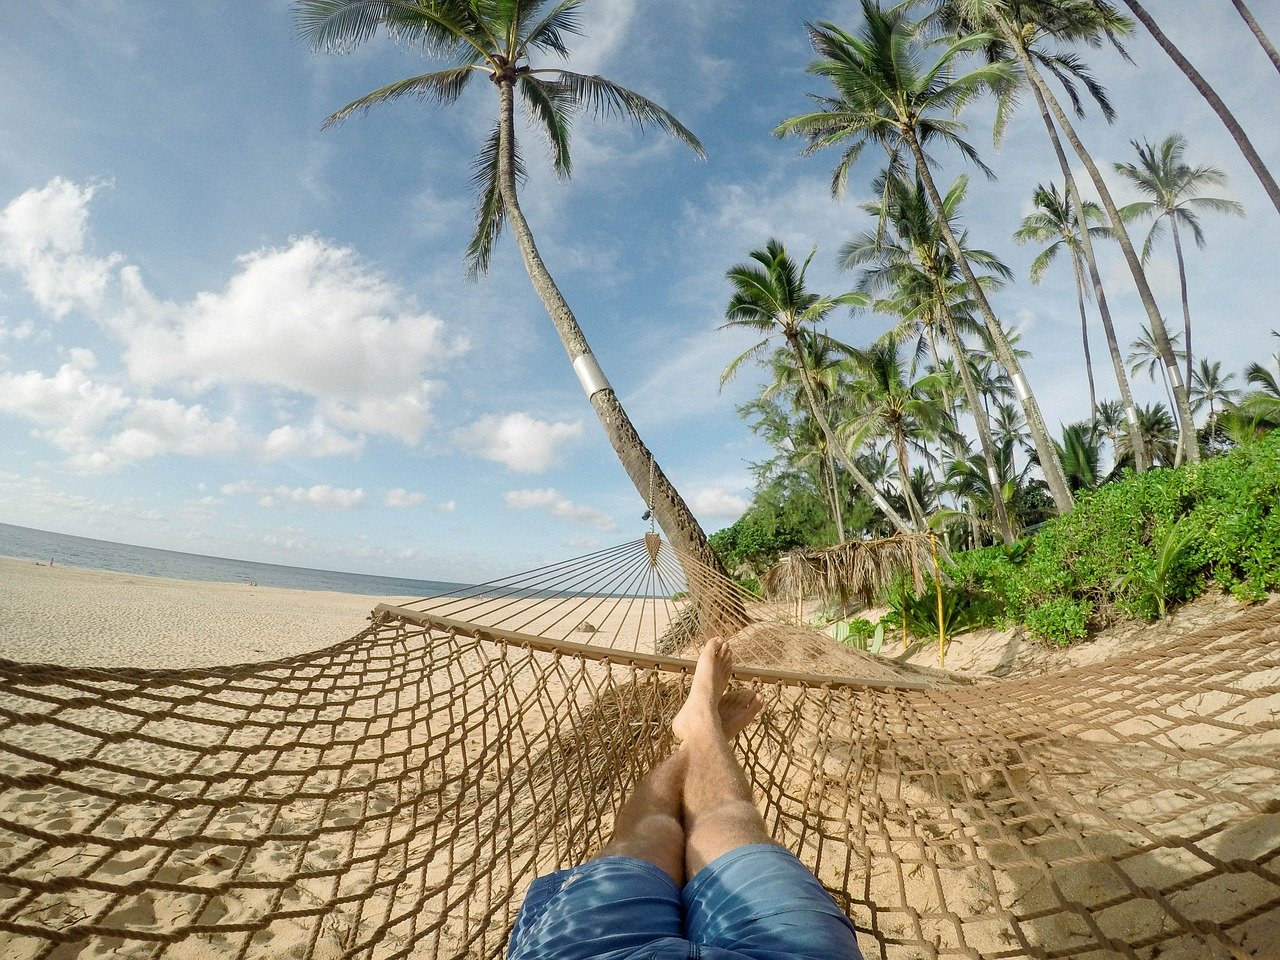 Top 10 Freelance Jobs That Allow You to Travel